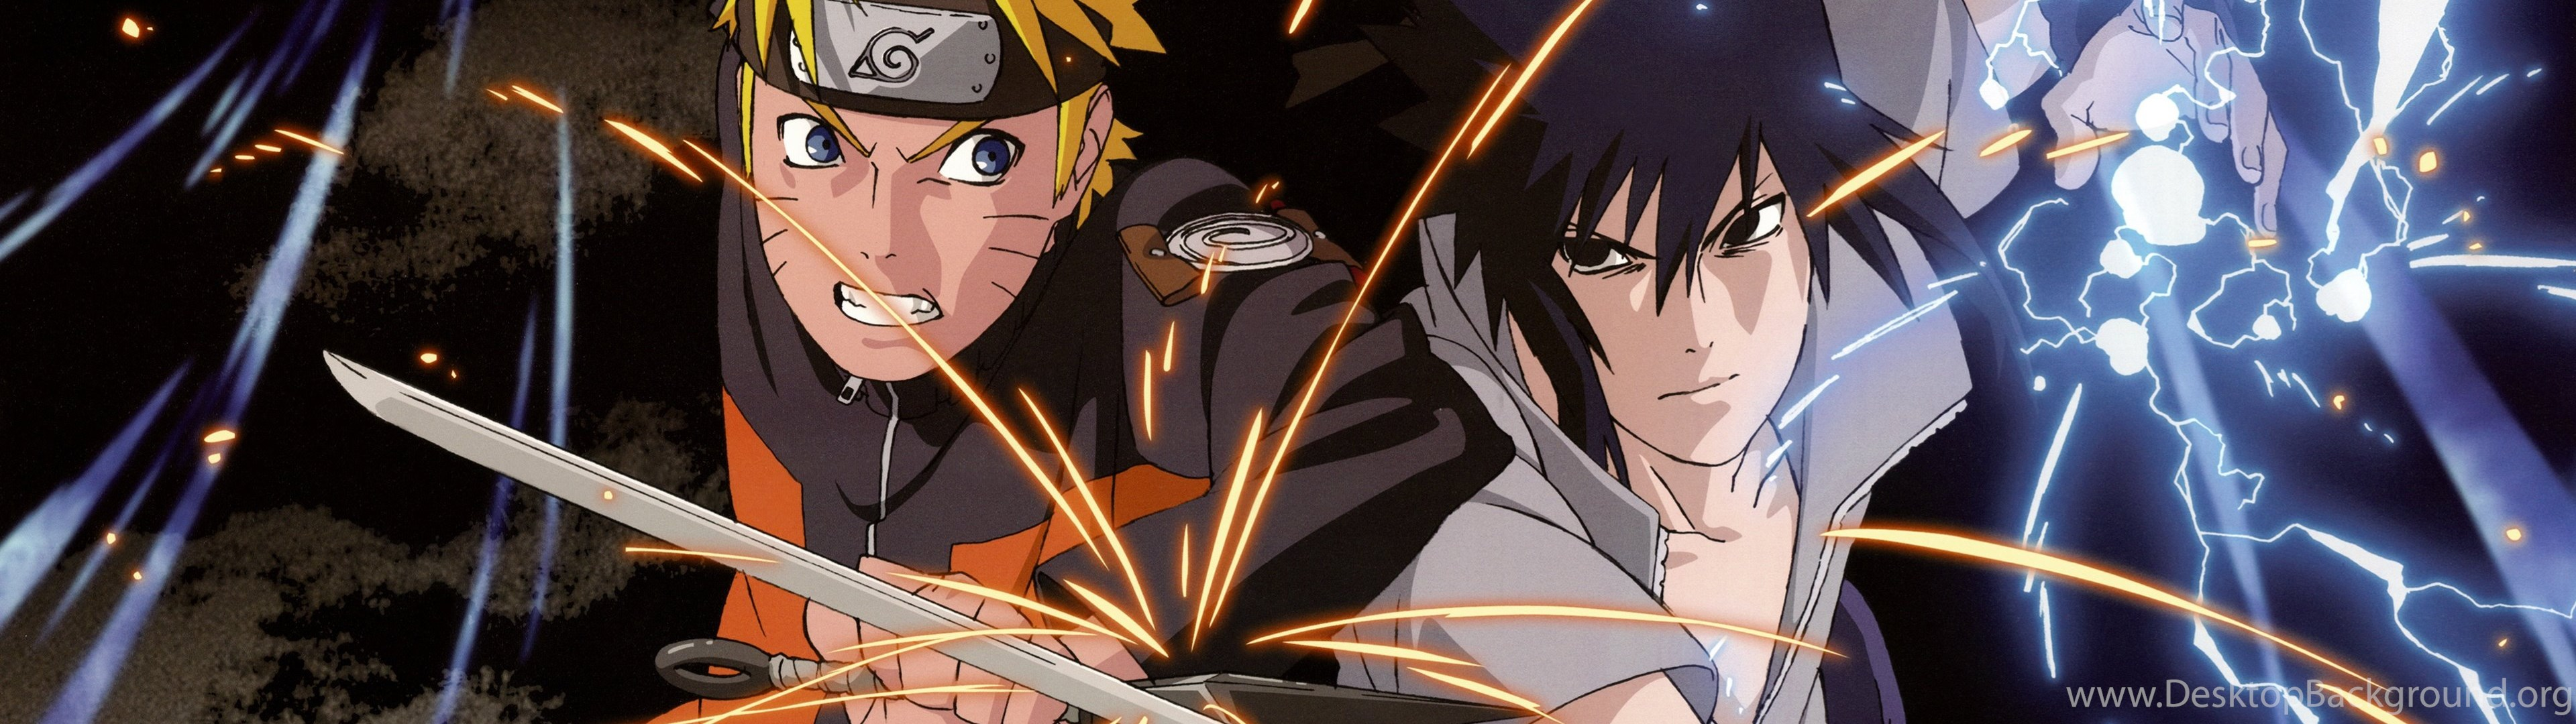 Cool Wallpaper Naruto Dual Screen - 873239_naruto-vs-sasuke-hd-desktop-wallpapers-widescreen-high-definition_3840x2160_h  You Should Have_798663.jpg